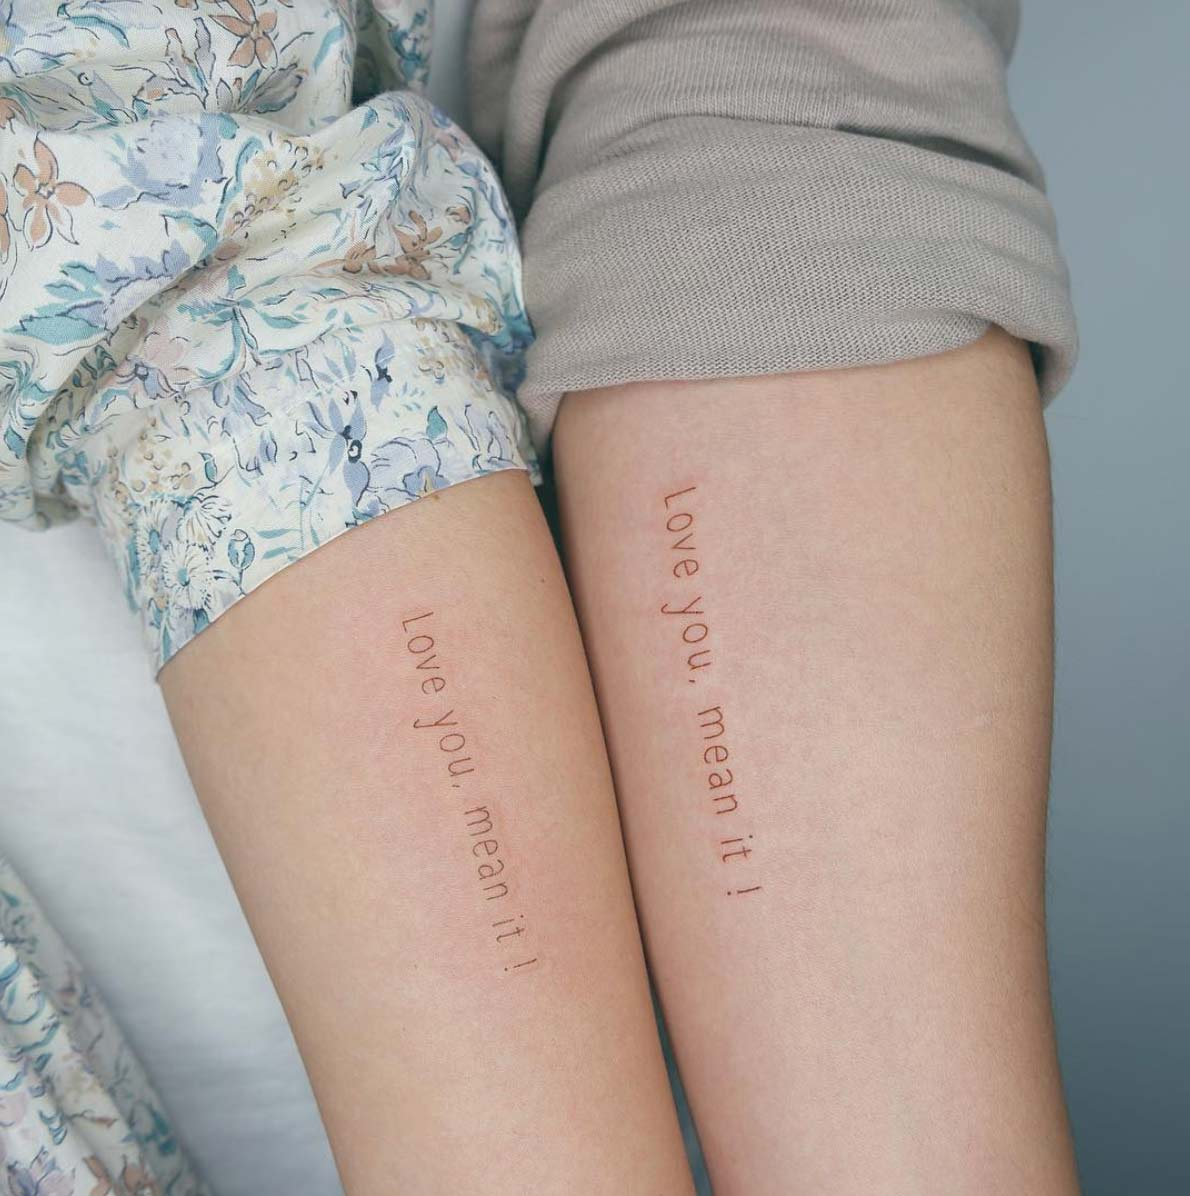 Cute Couple Tattoos designs